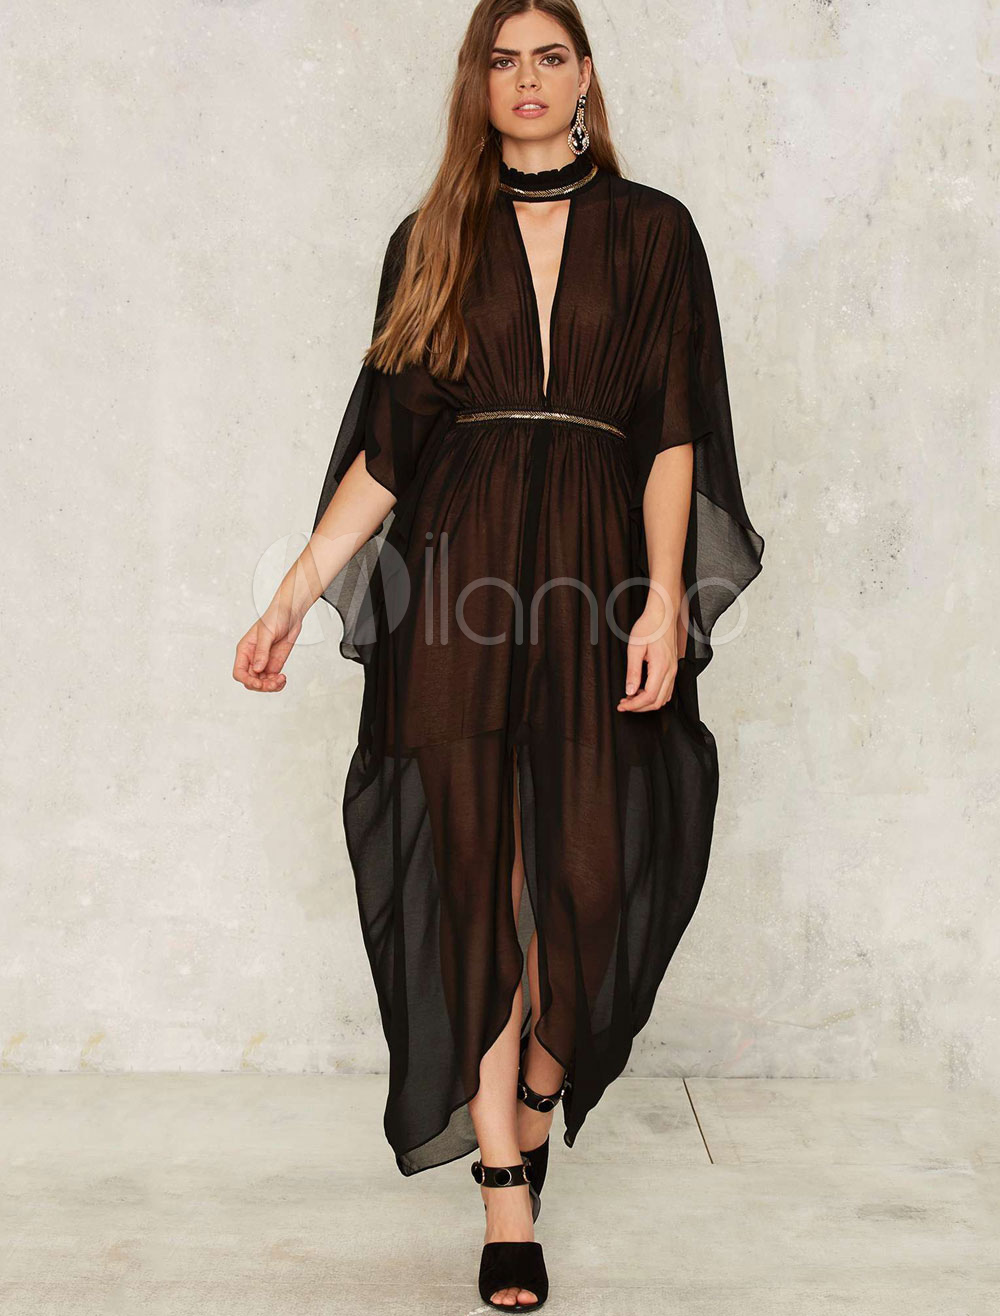 Buy Black Maxi Dress Metallic High Collar Butterfly Sleeve Cut Out Draped Semi Sheer Slit Chic Long Dress for $26.99 in Milanoo store